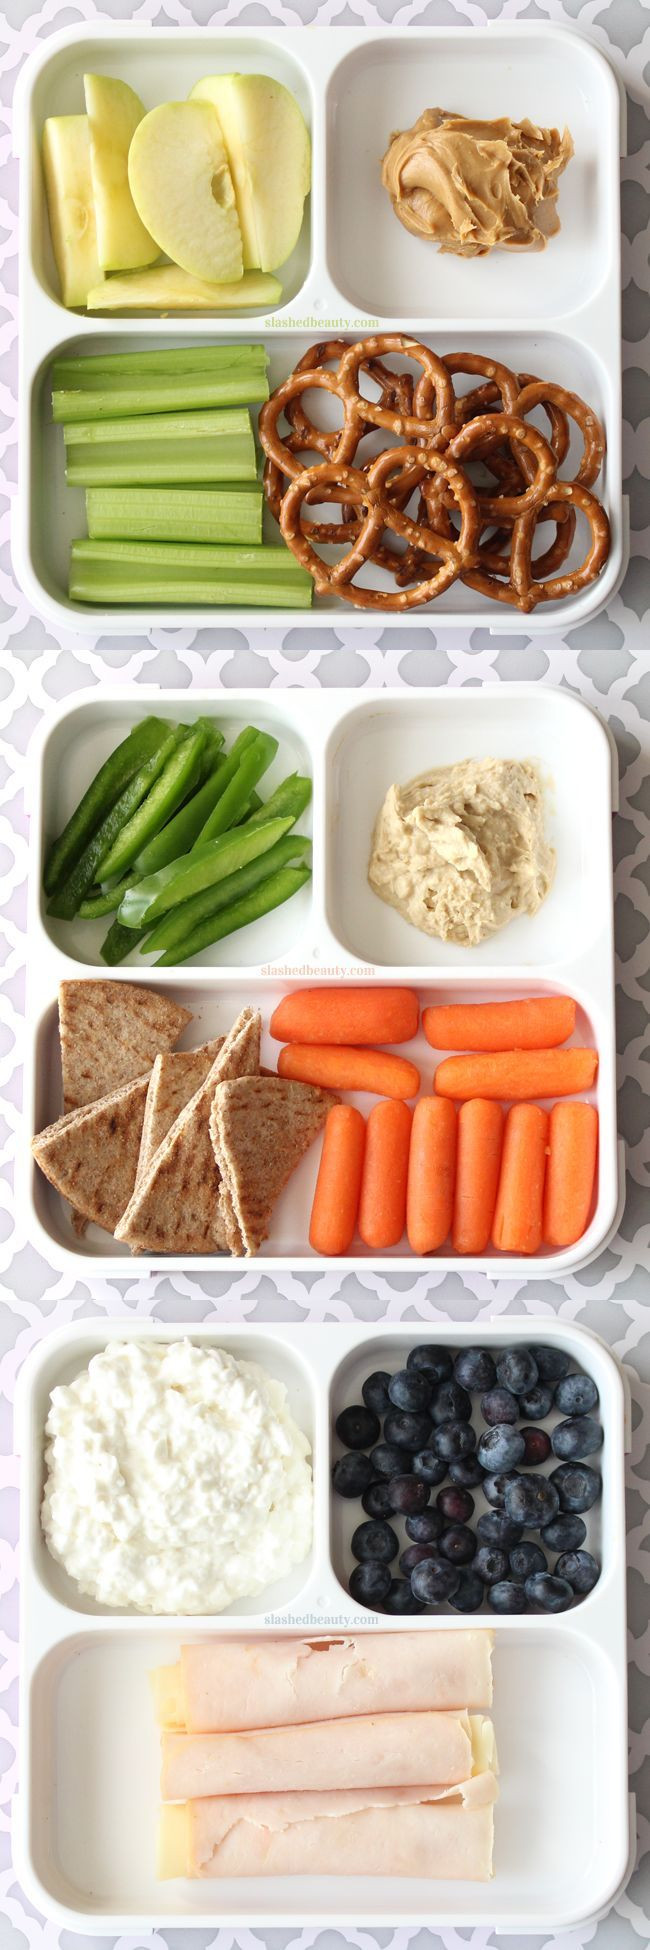 Healthy Snacks For Working Out  549 best images about Healthy Snacks For Kids on Pinterest